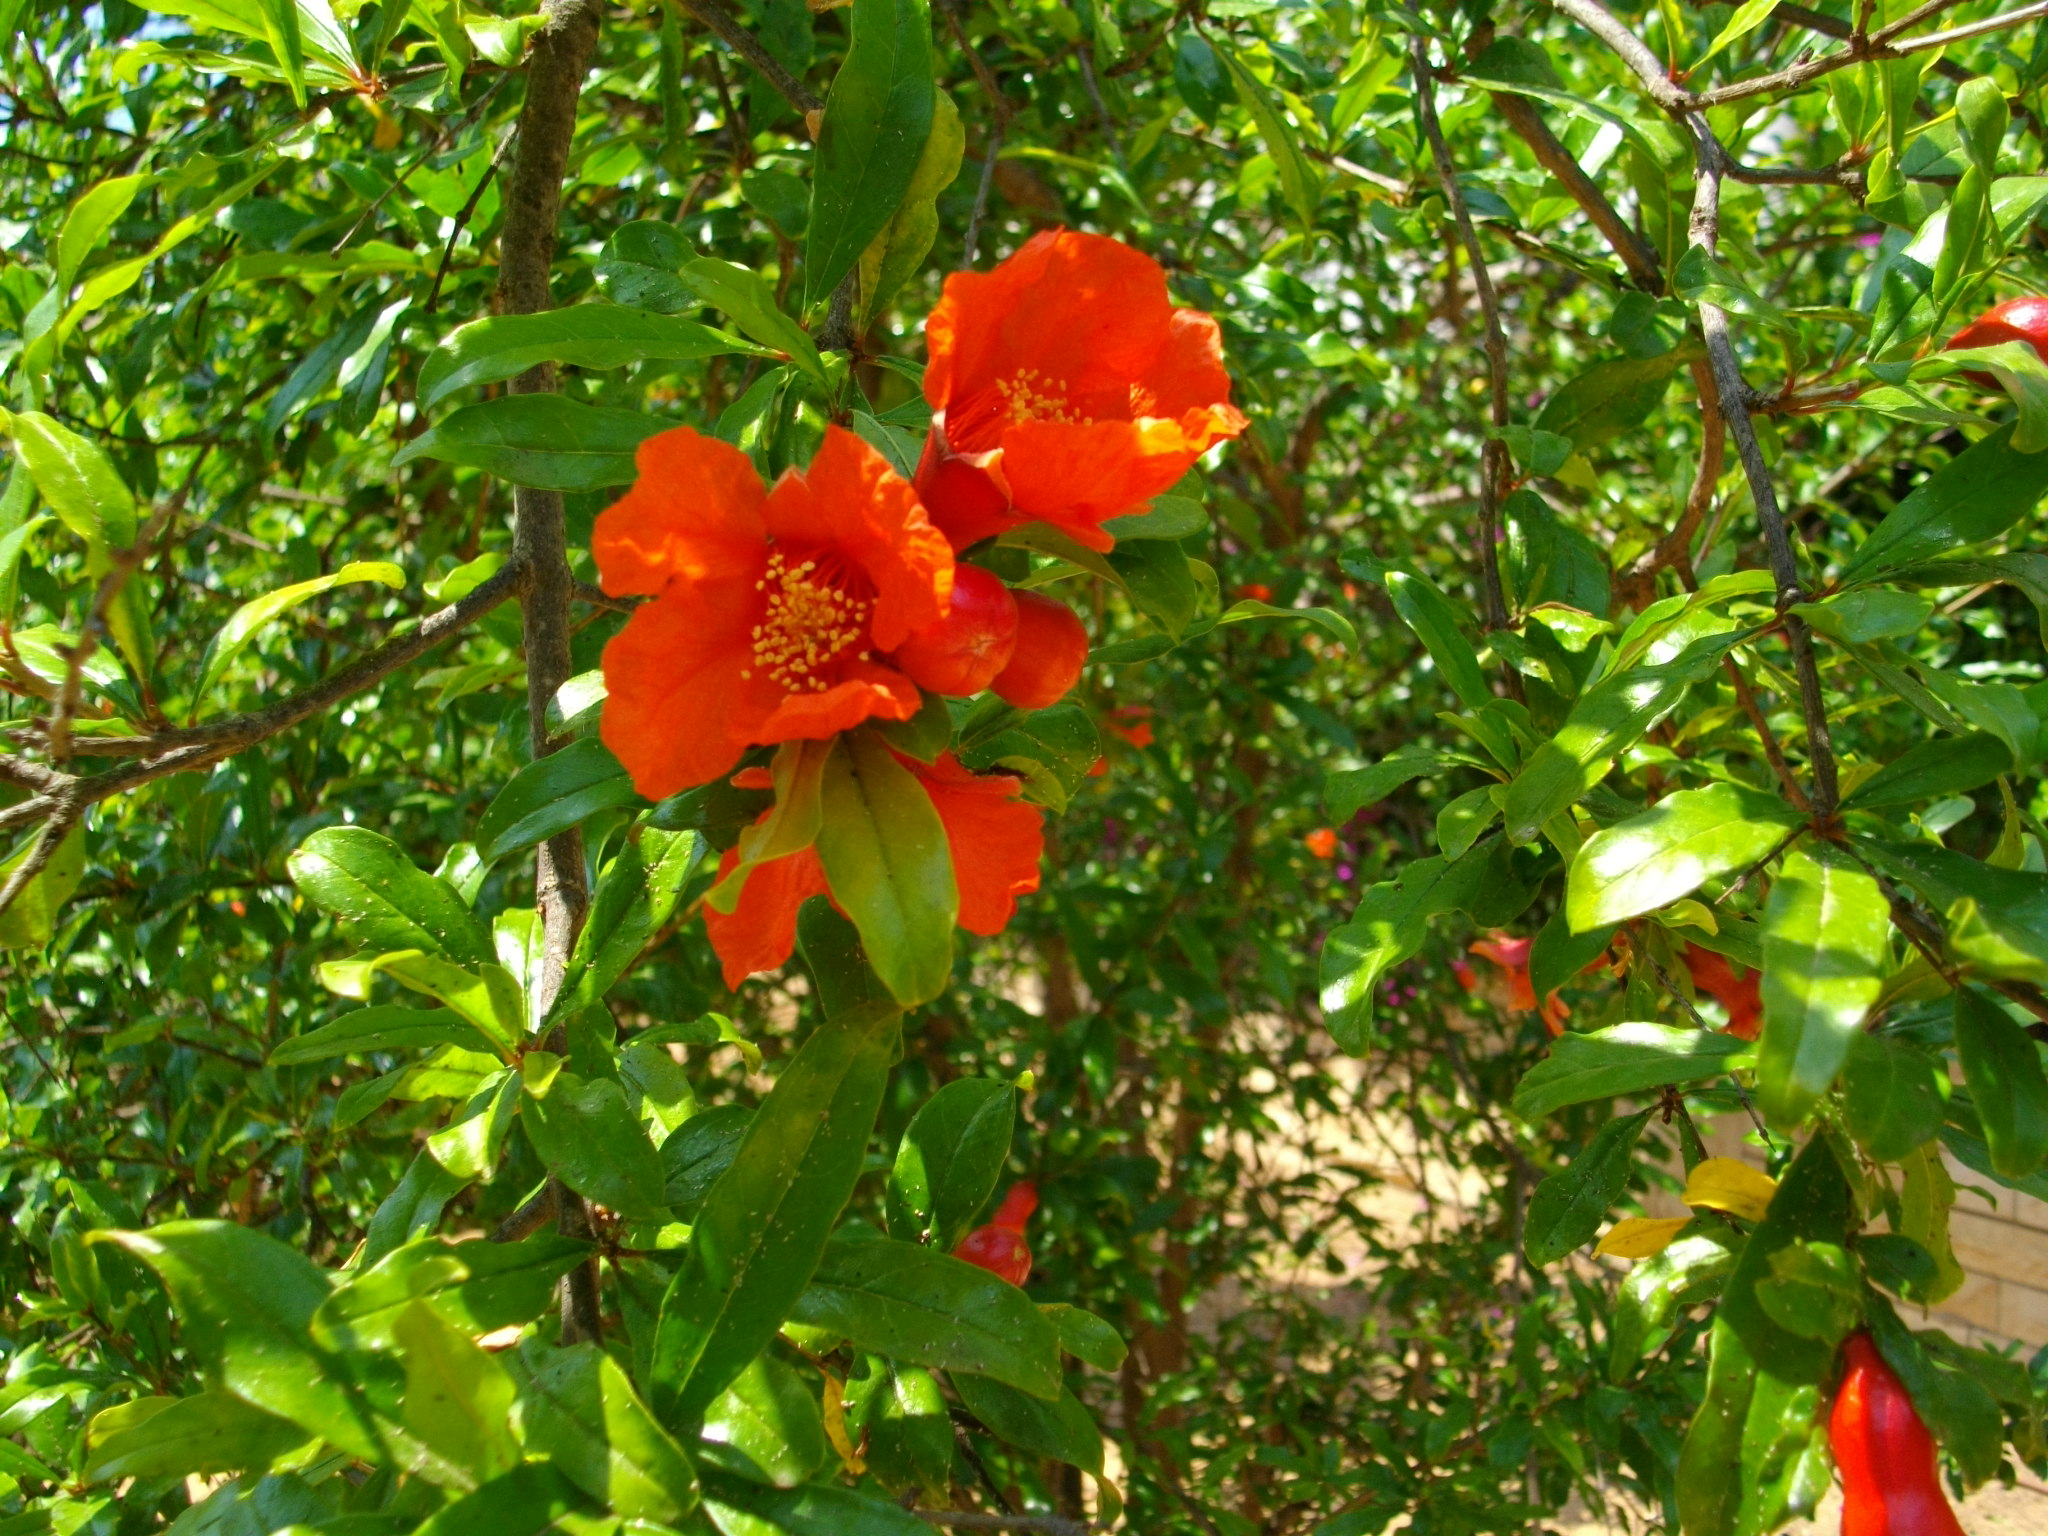 pomegranate tree in bloom